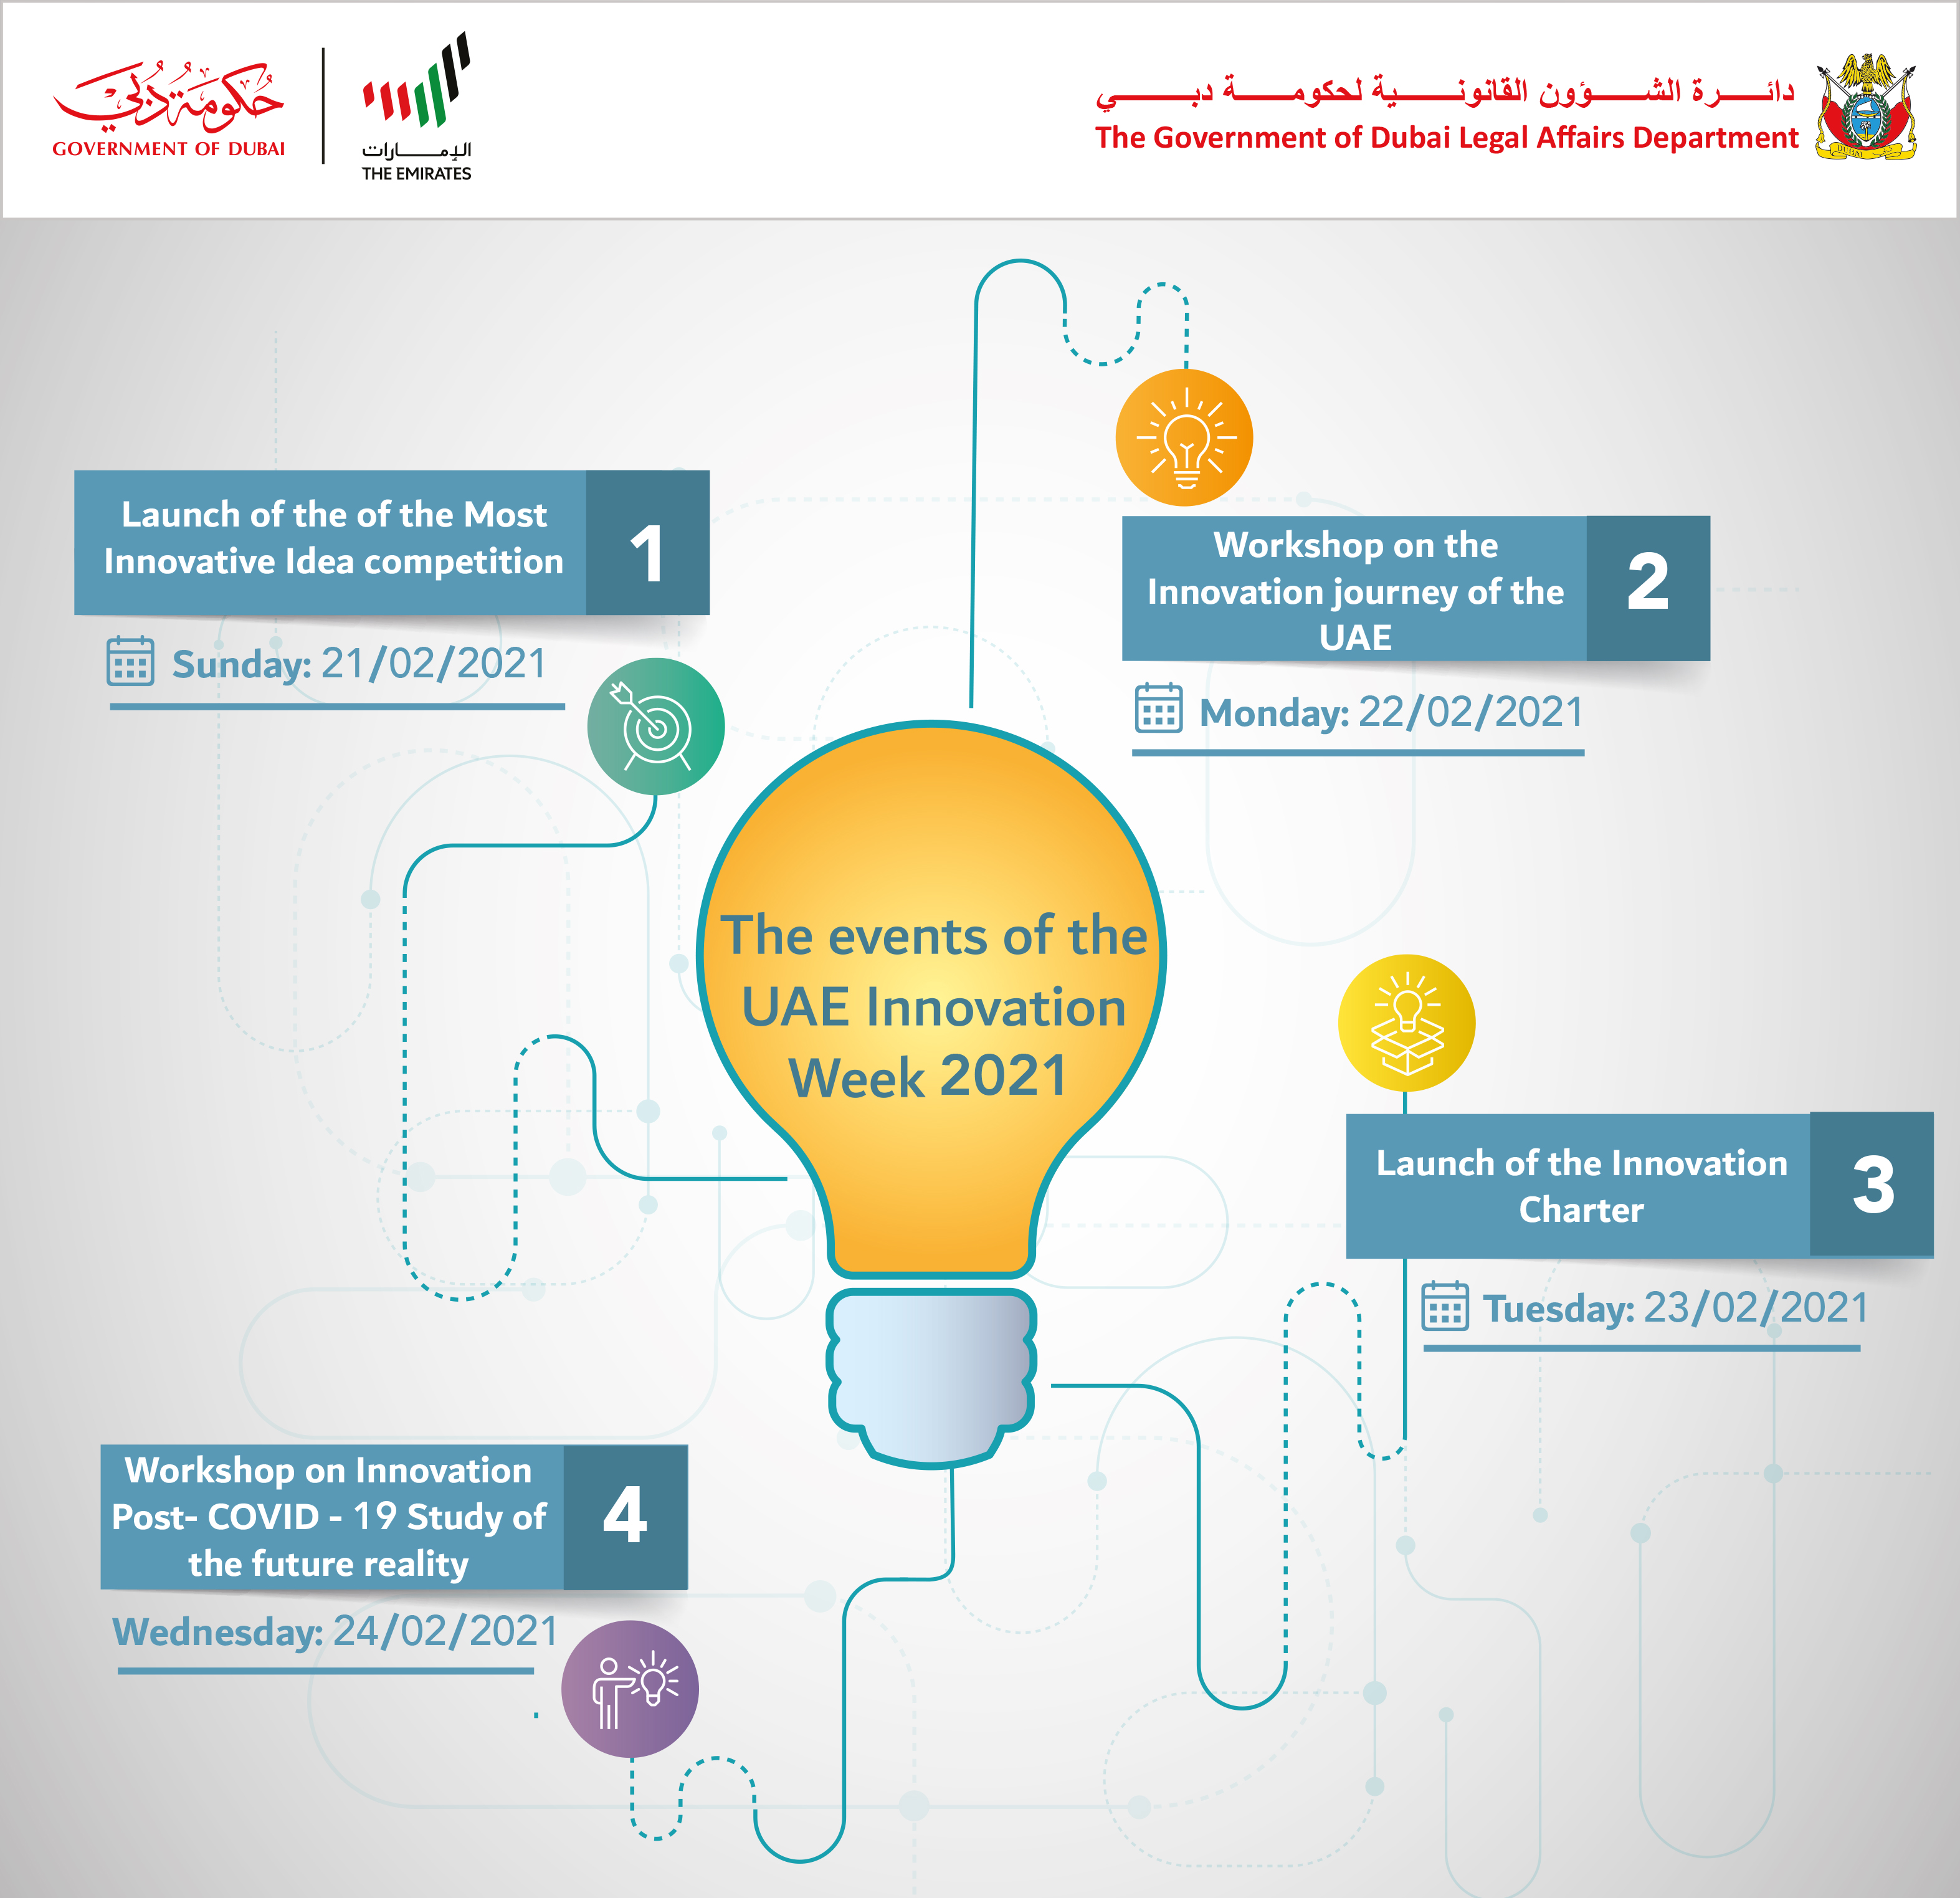 The Government of Dubai Legal Affairs Department Participates in UAE Innovation Week